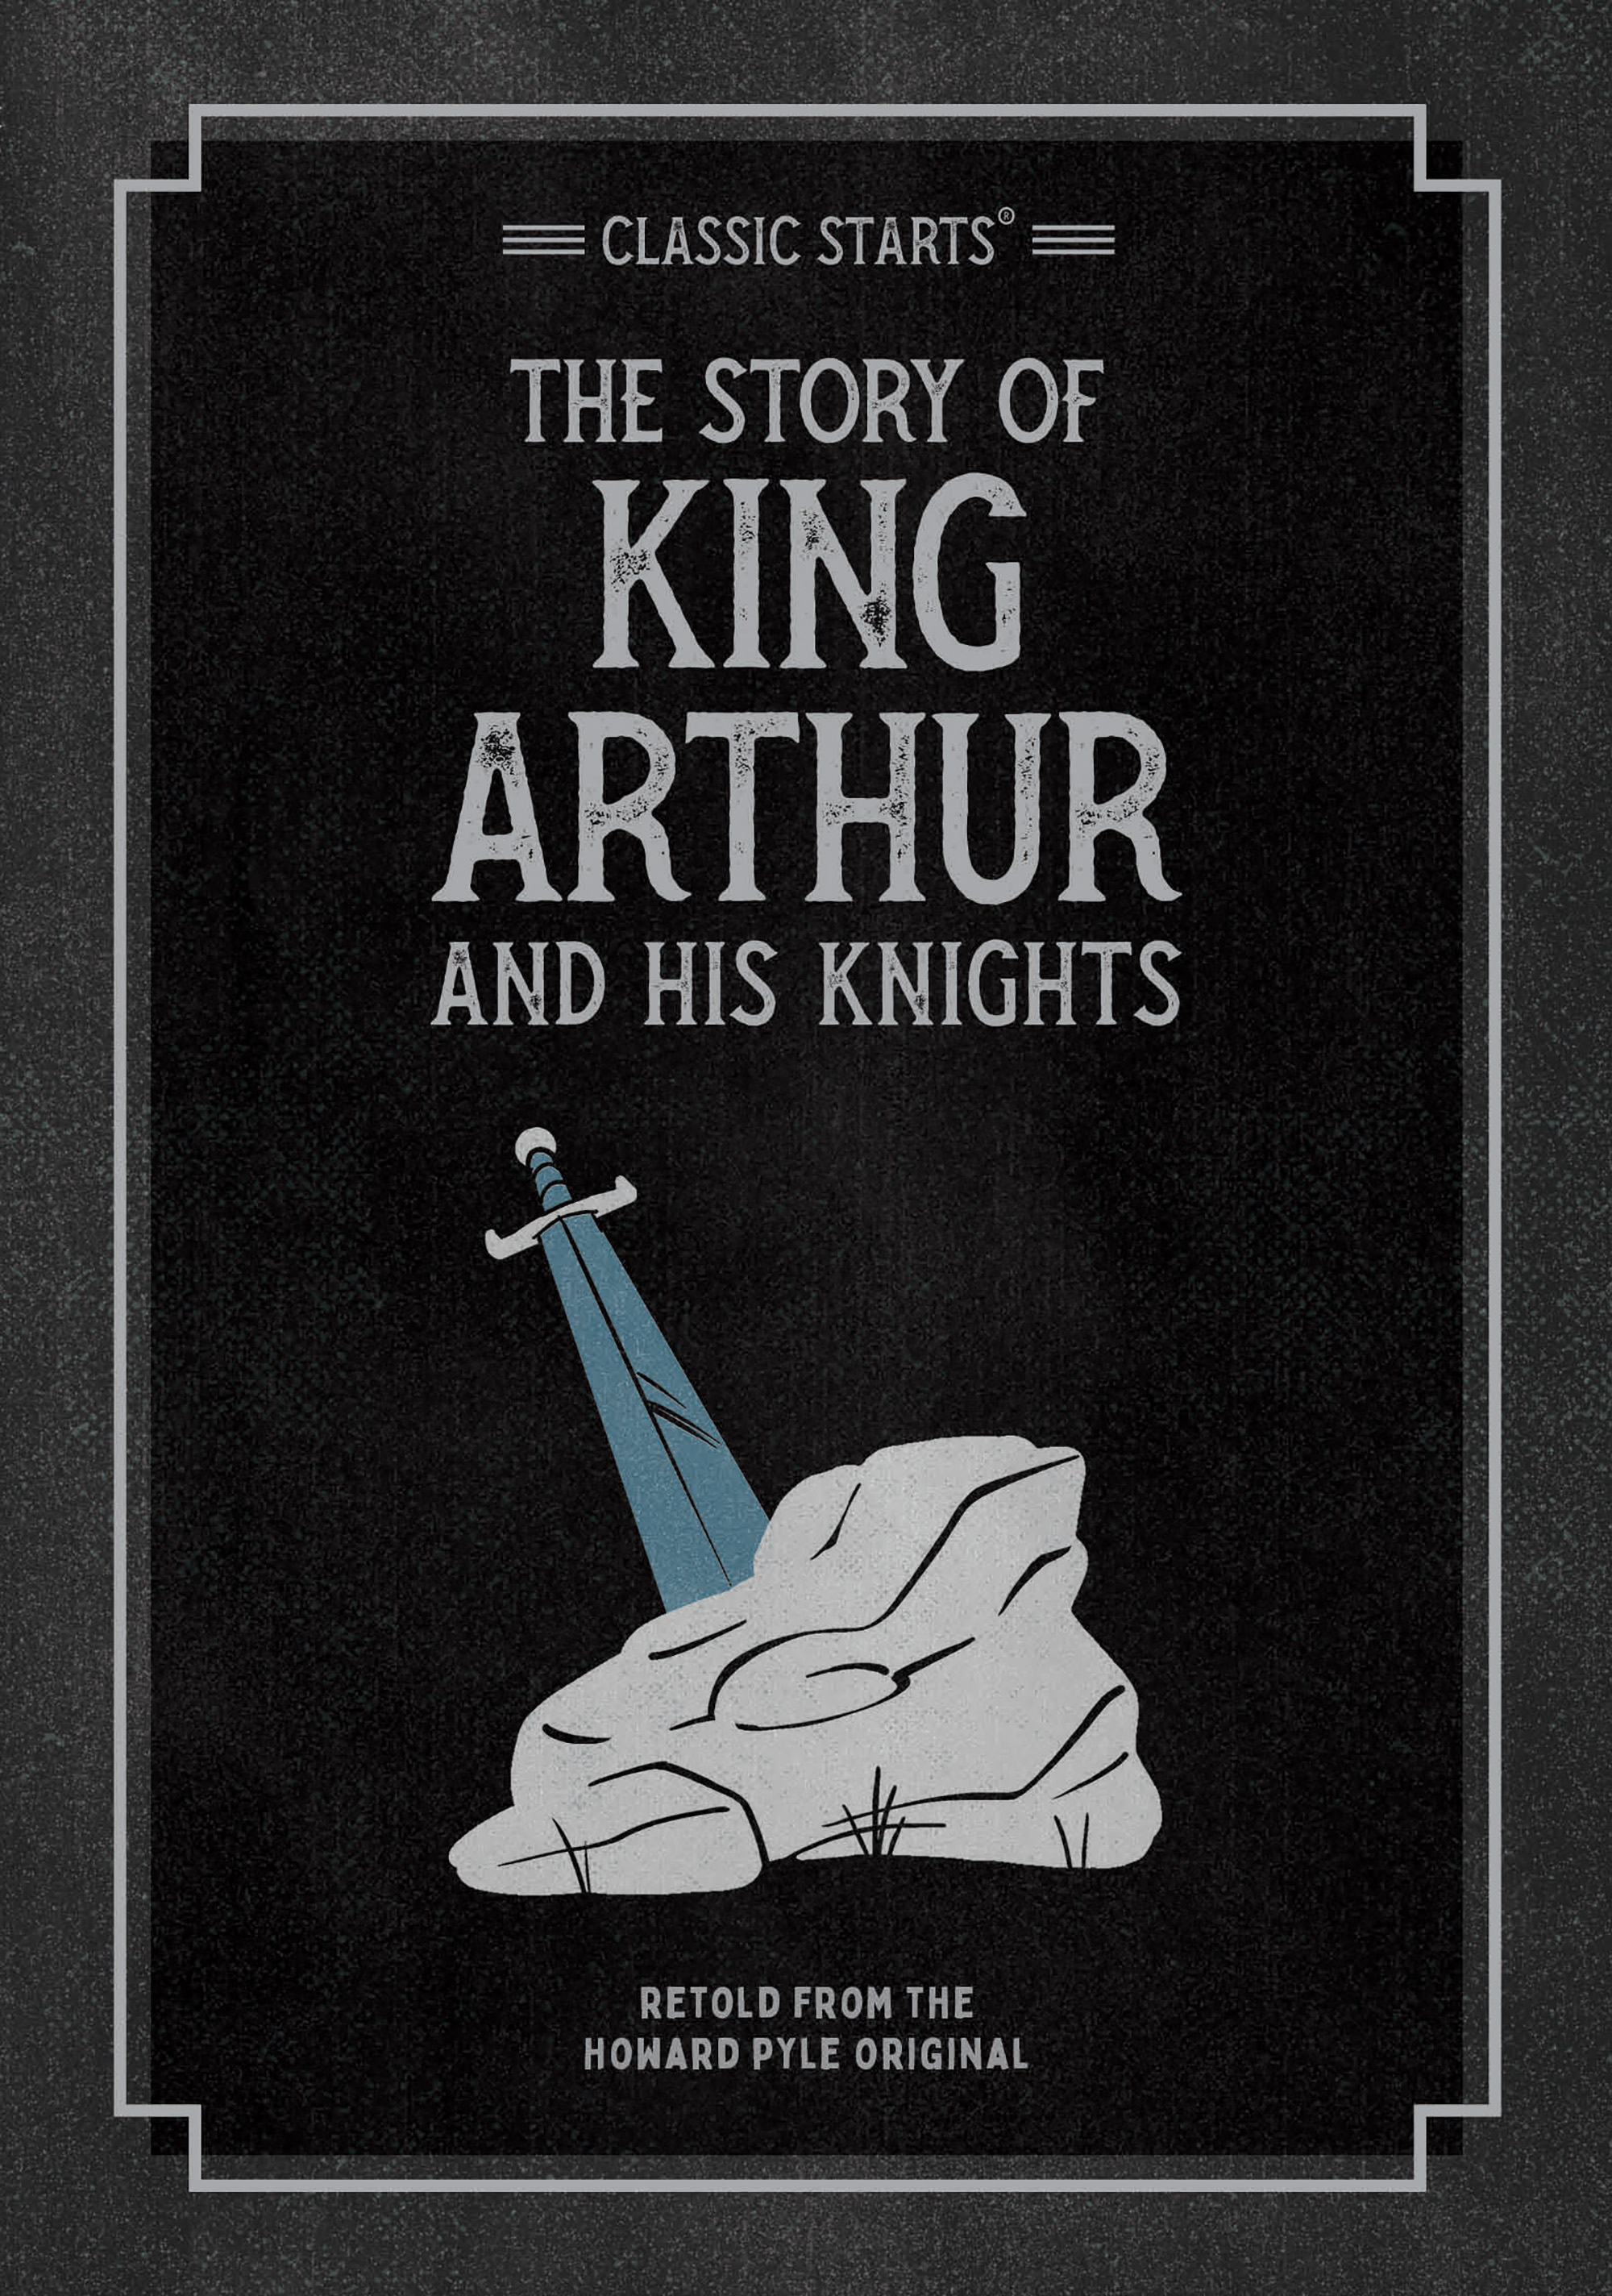 Classic Starts®: The Story of King Arthur  His Knights